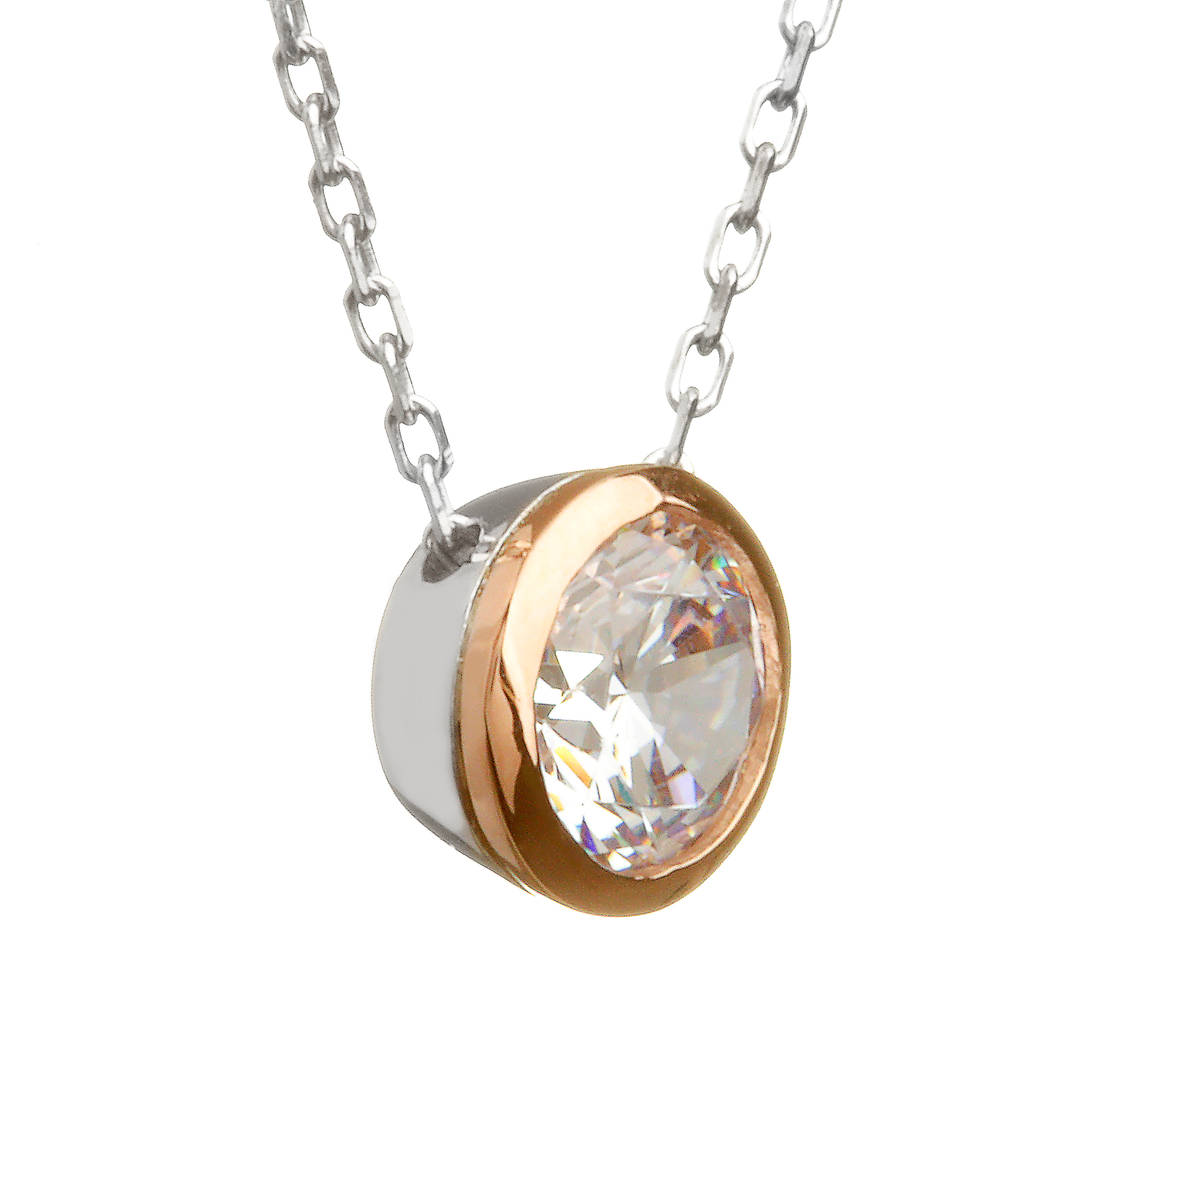 House of Lor silver/rose cz pendant made from rare Irish gold